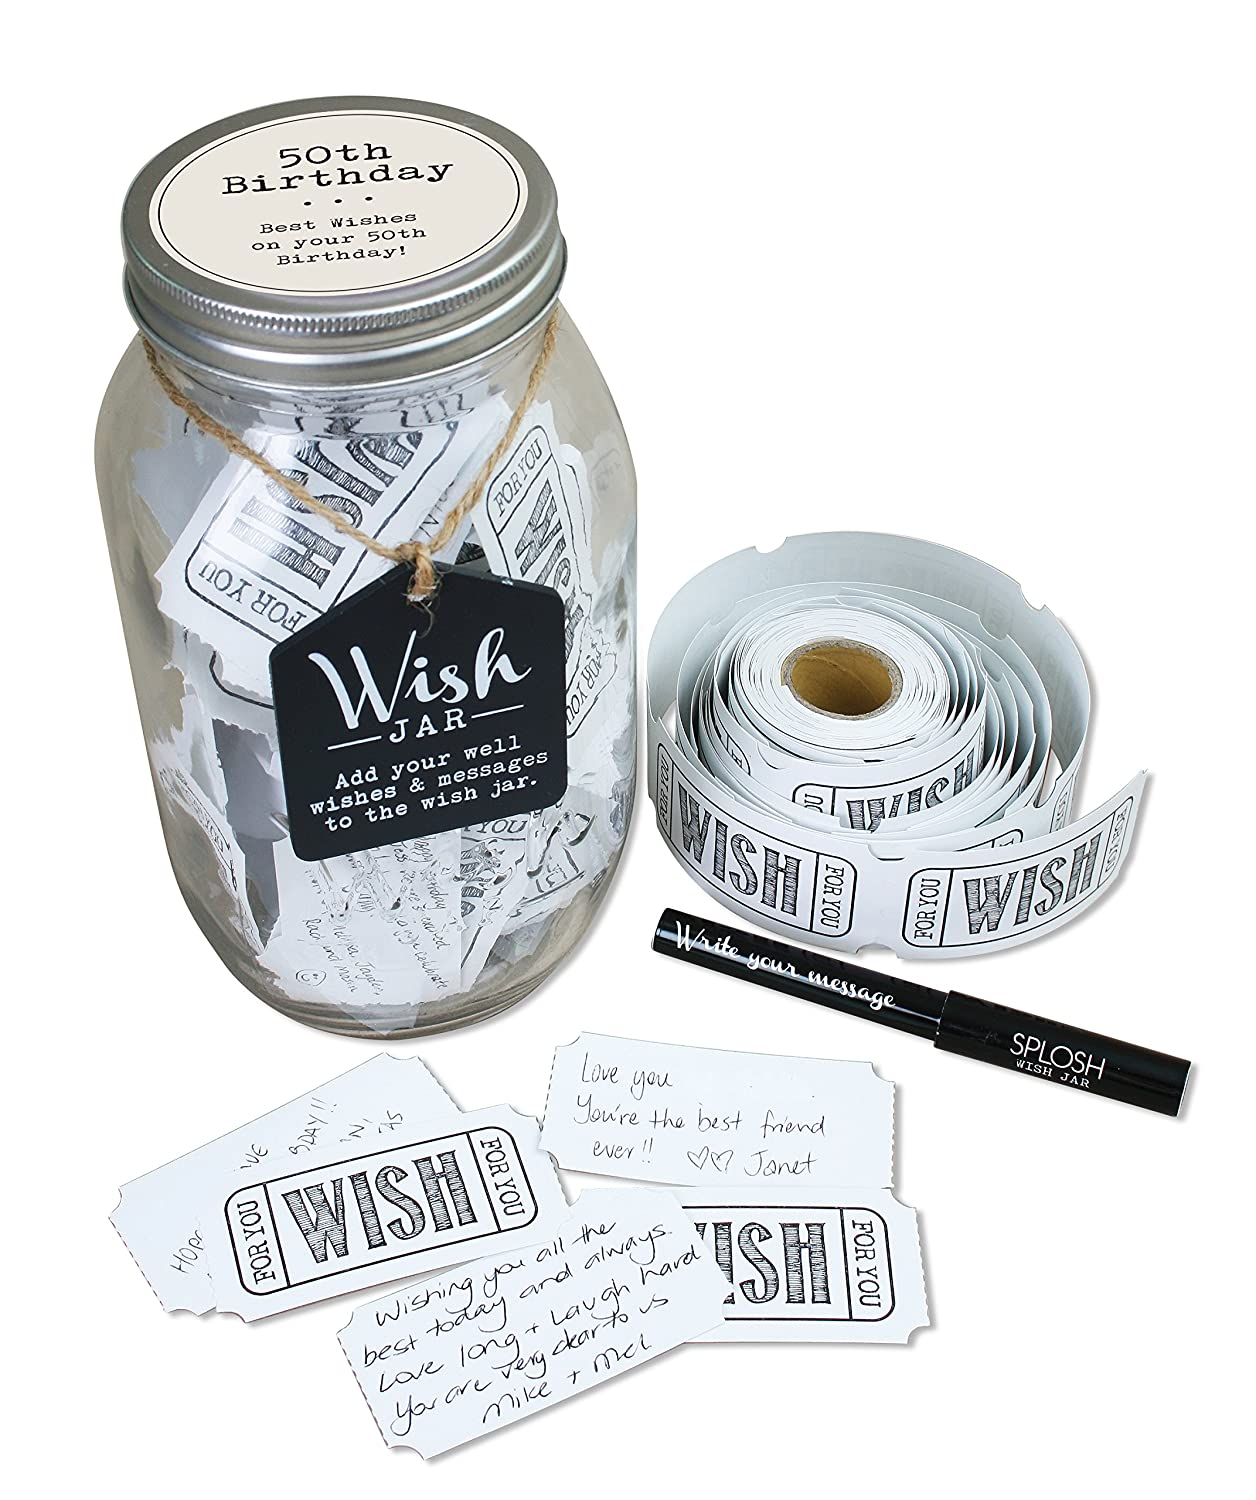 Top Shelf 50th Birthday Wish Jar Unique And Thoughtful Gift Ideas For Friends Family Memorable Mom Dad Grandma Grandpa Kit Comes